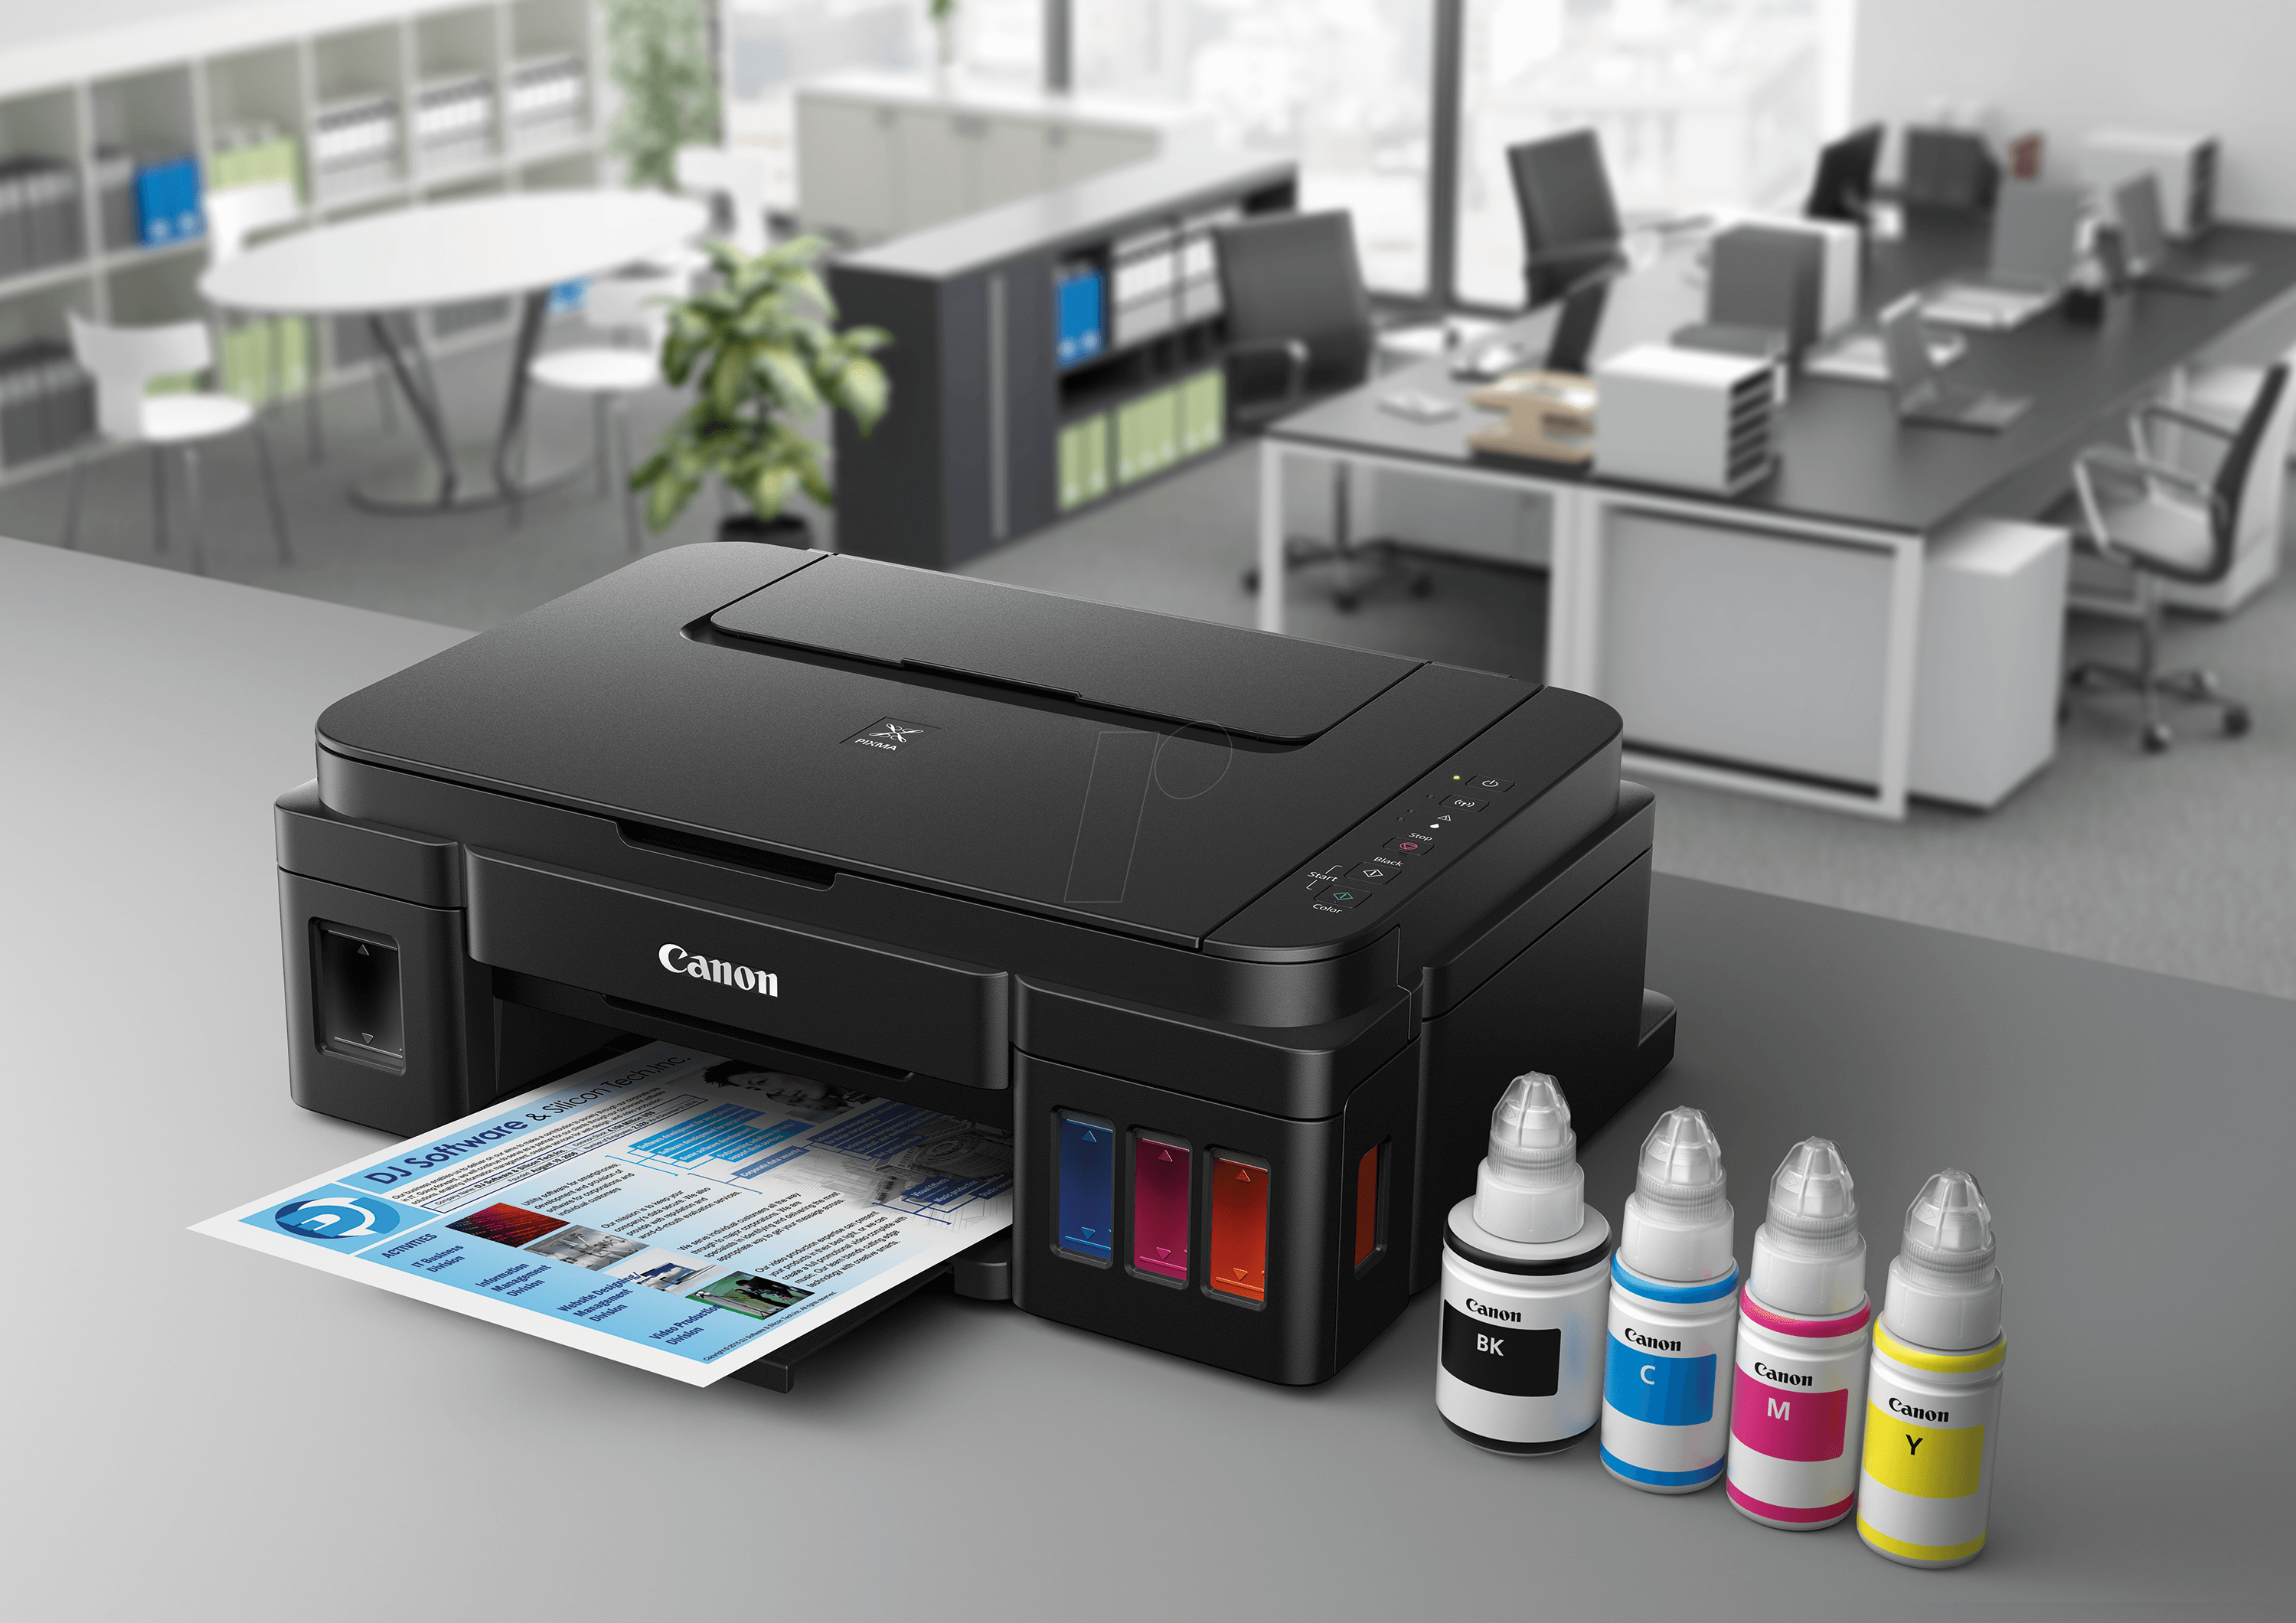 PIXMA G3501 - Printer, ink, 3-in-1, Wi-Fi, inc  copyright levy